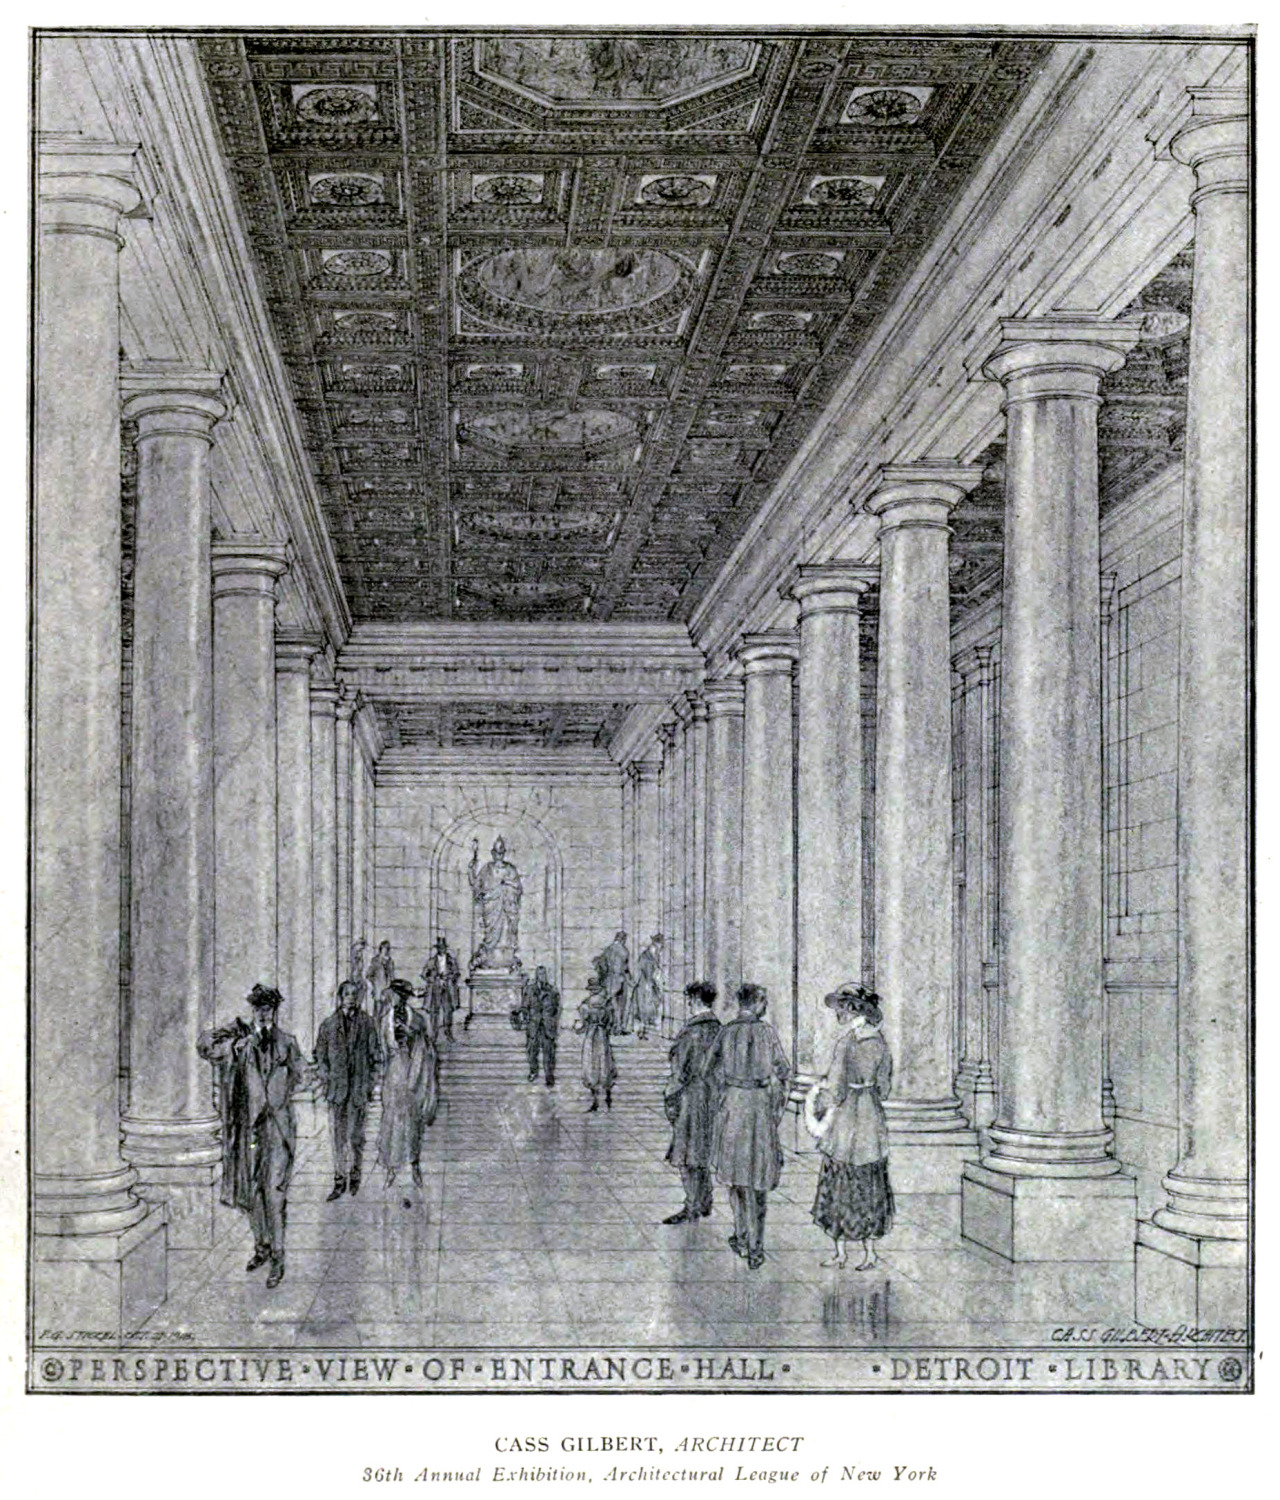 Inside the entrance hall of Cass Gilbert's public library building, Detroit